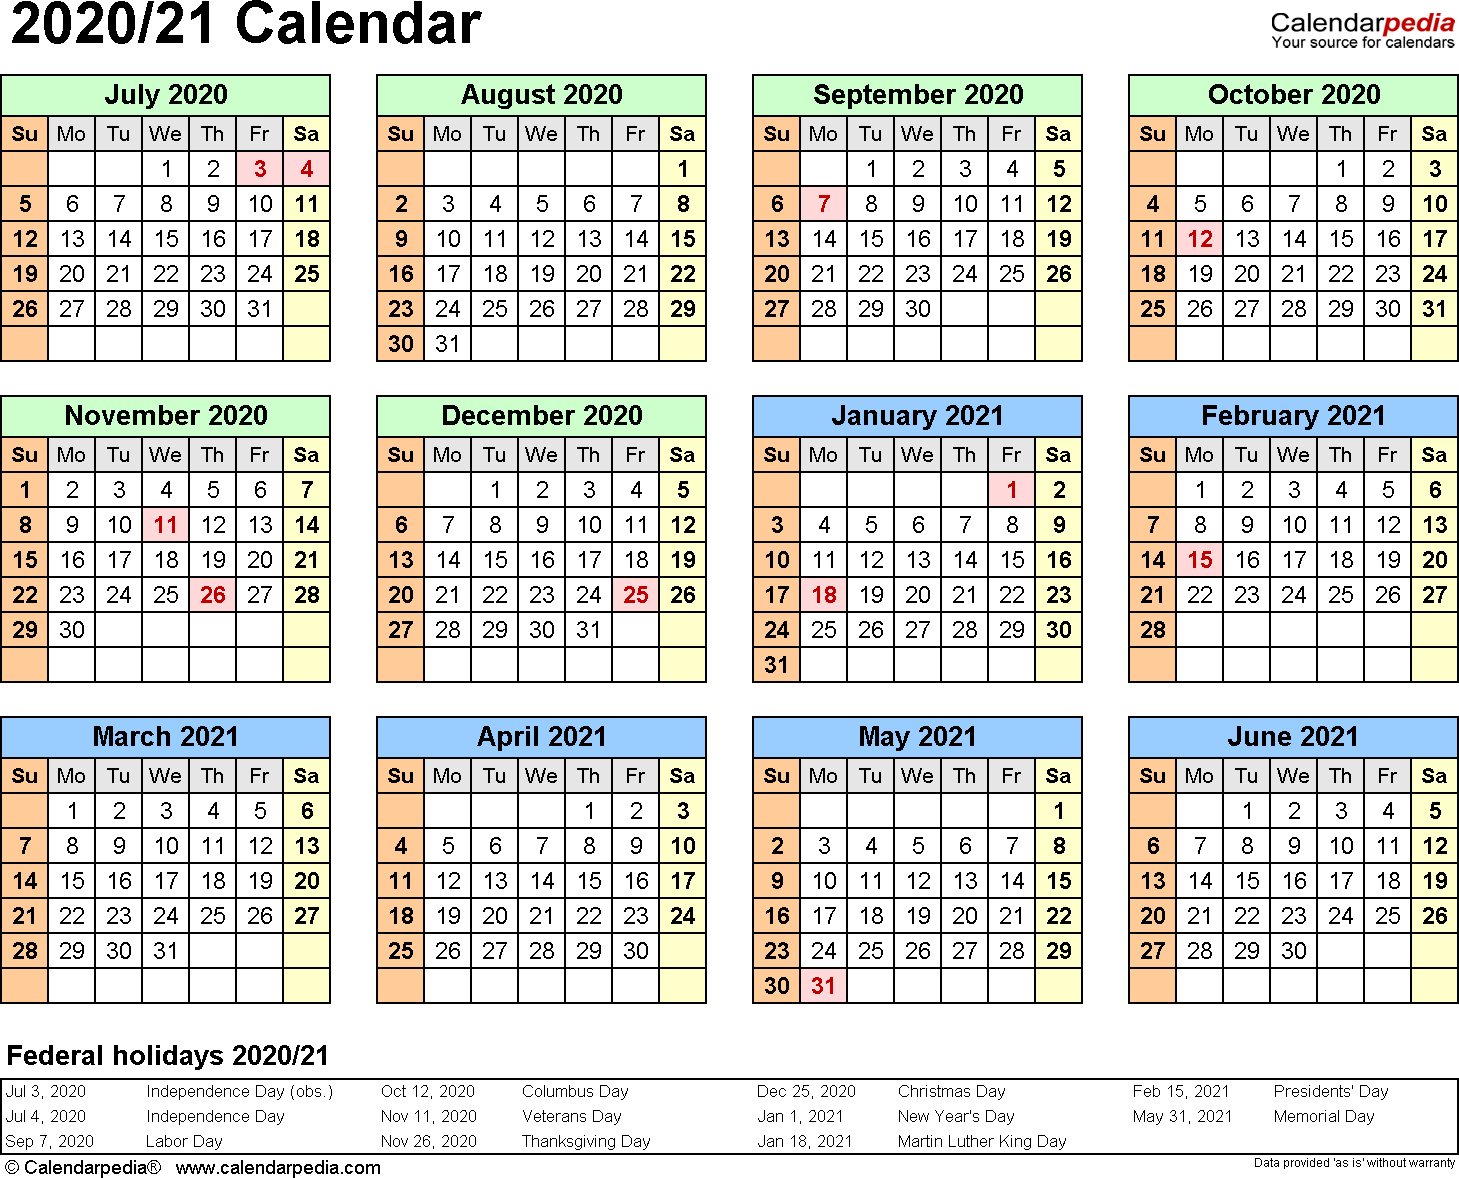 Split Year Calendars 2020/2021 (July To June) - Word Templates